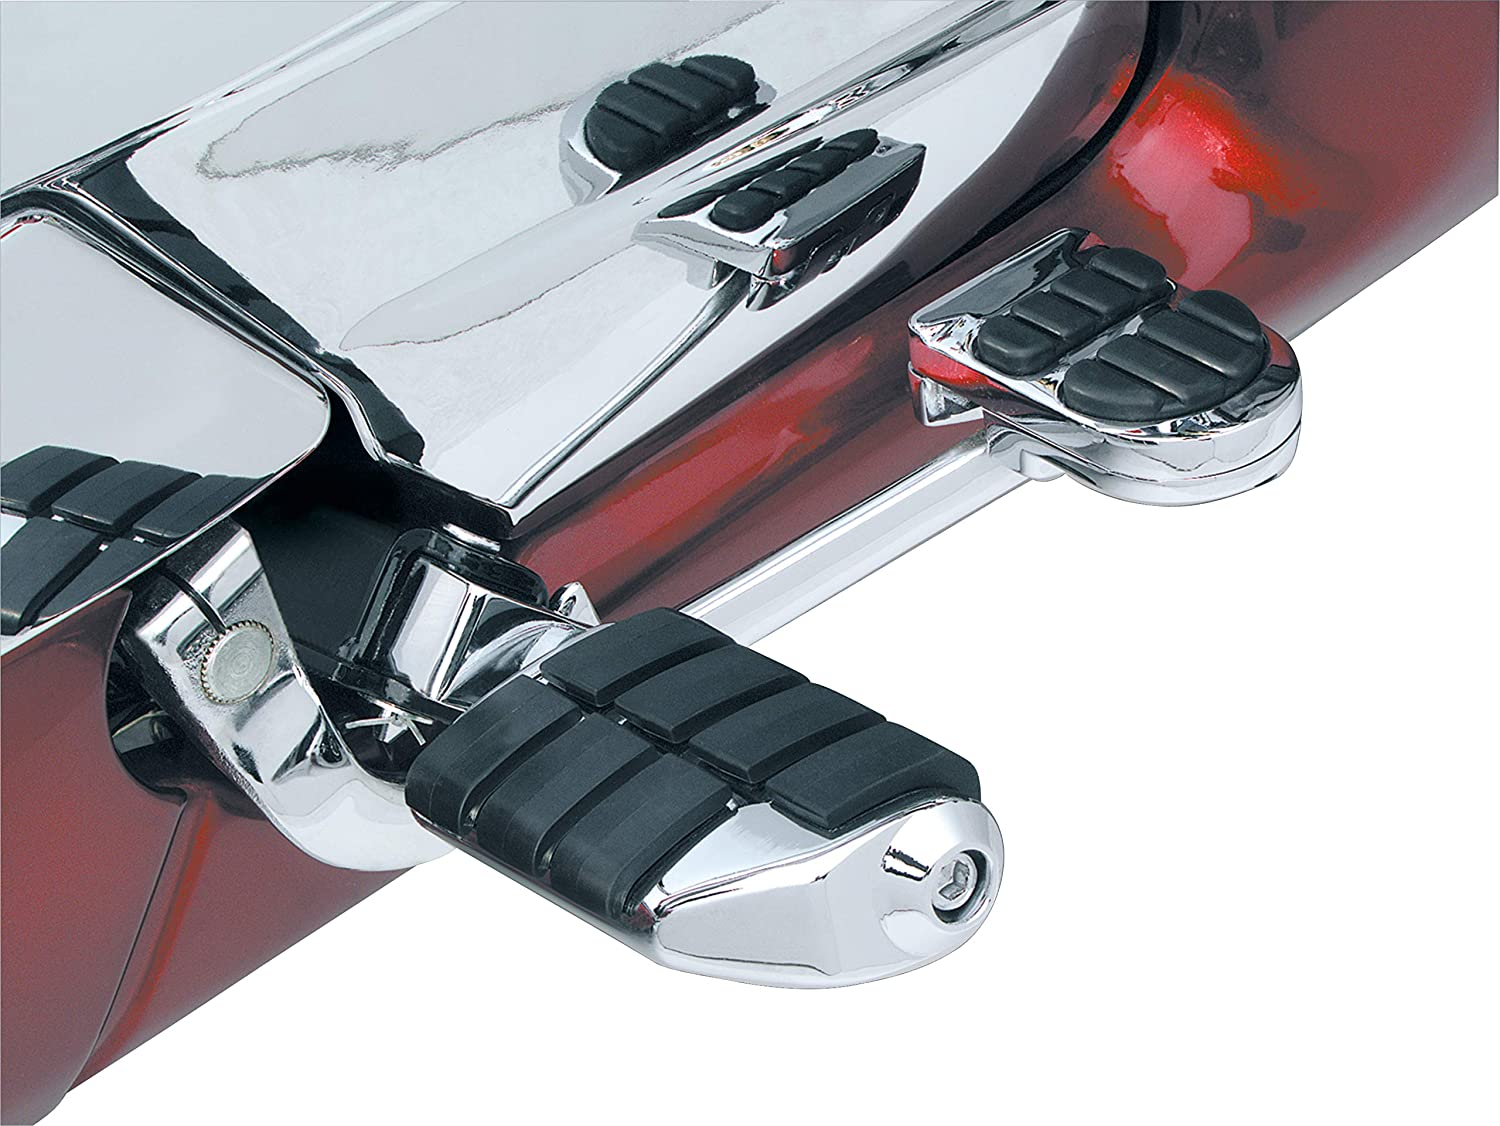 Kuryakyn 4025 Motorcycle Foot Control: ISO Brake Pedal Pad for 1998-2005 Honda Gold Wing & Valkyrie Motorcycles, Chrome